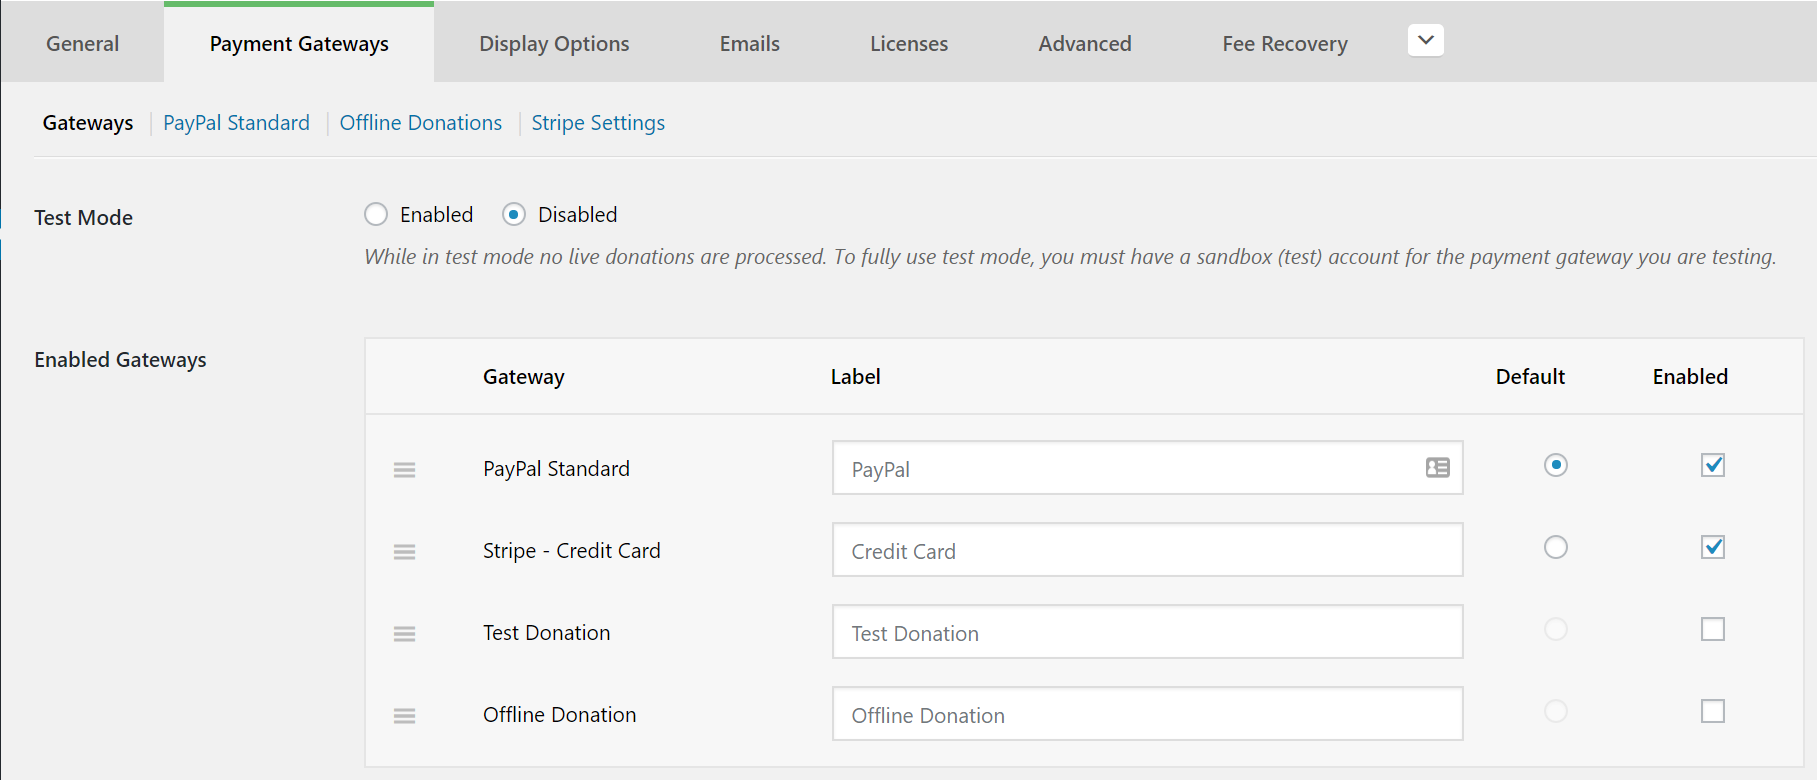 Activate the Stripe payment methods in your global Payment Gateway settings